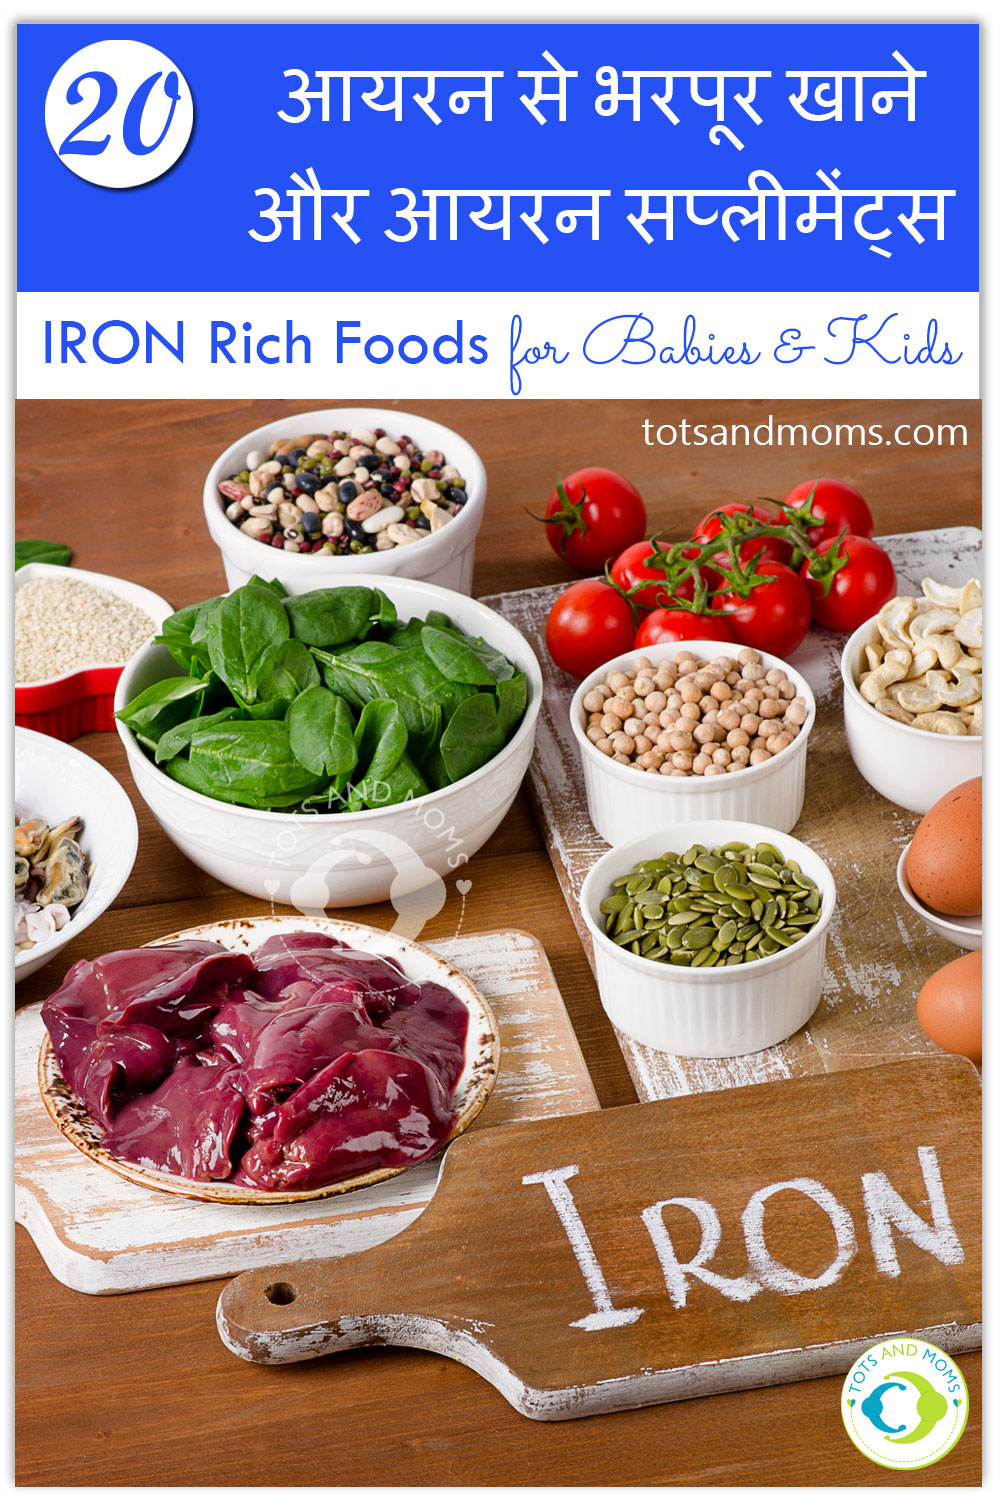 Iron Rich Foods & Iron Supplements for Babies & Kids Kannada Hindi Anemia haemoglobin